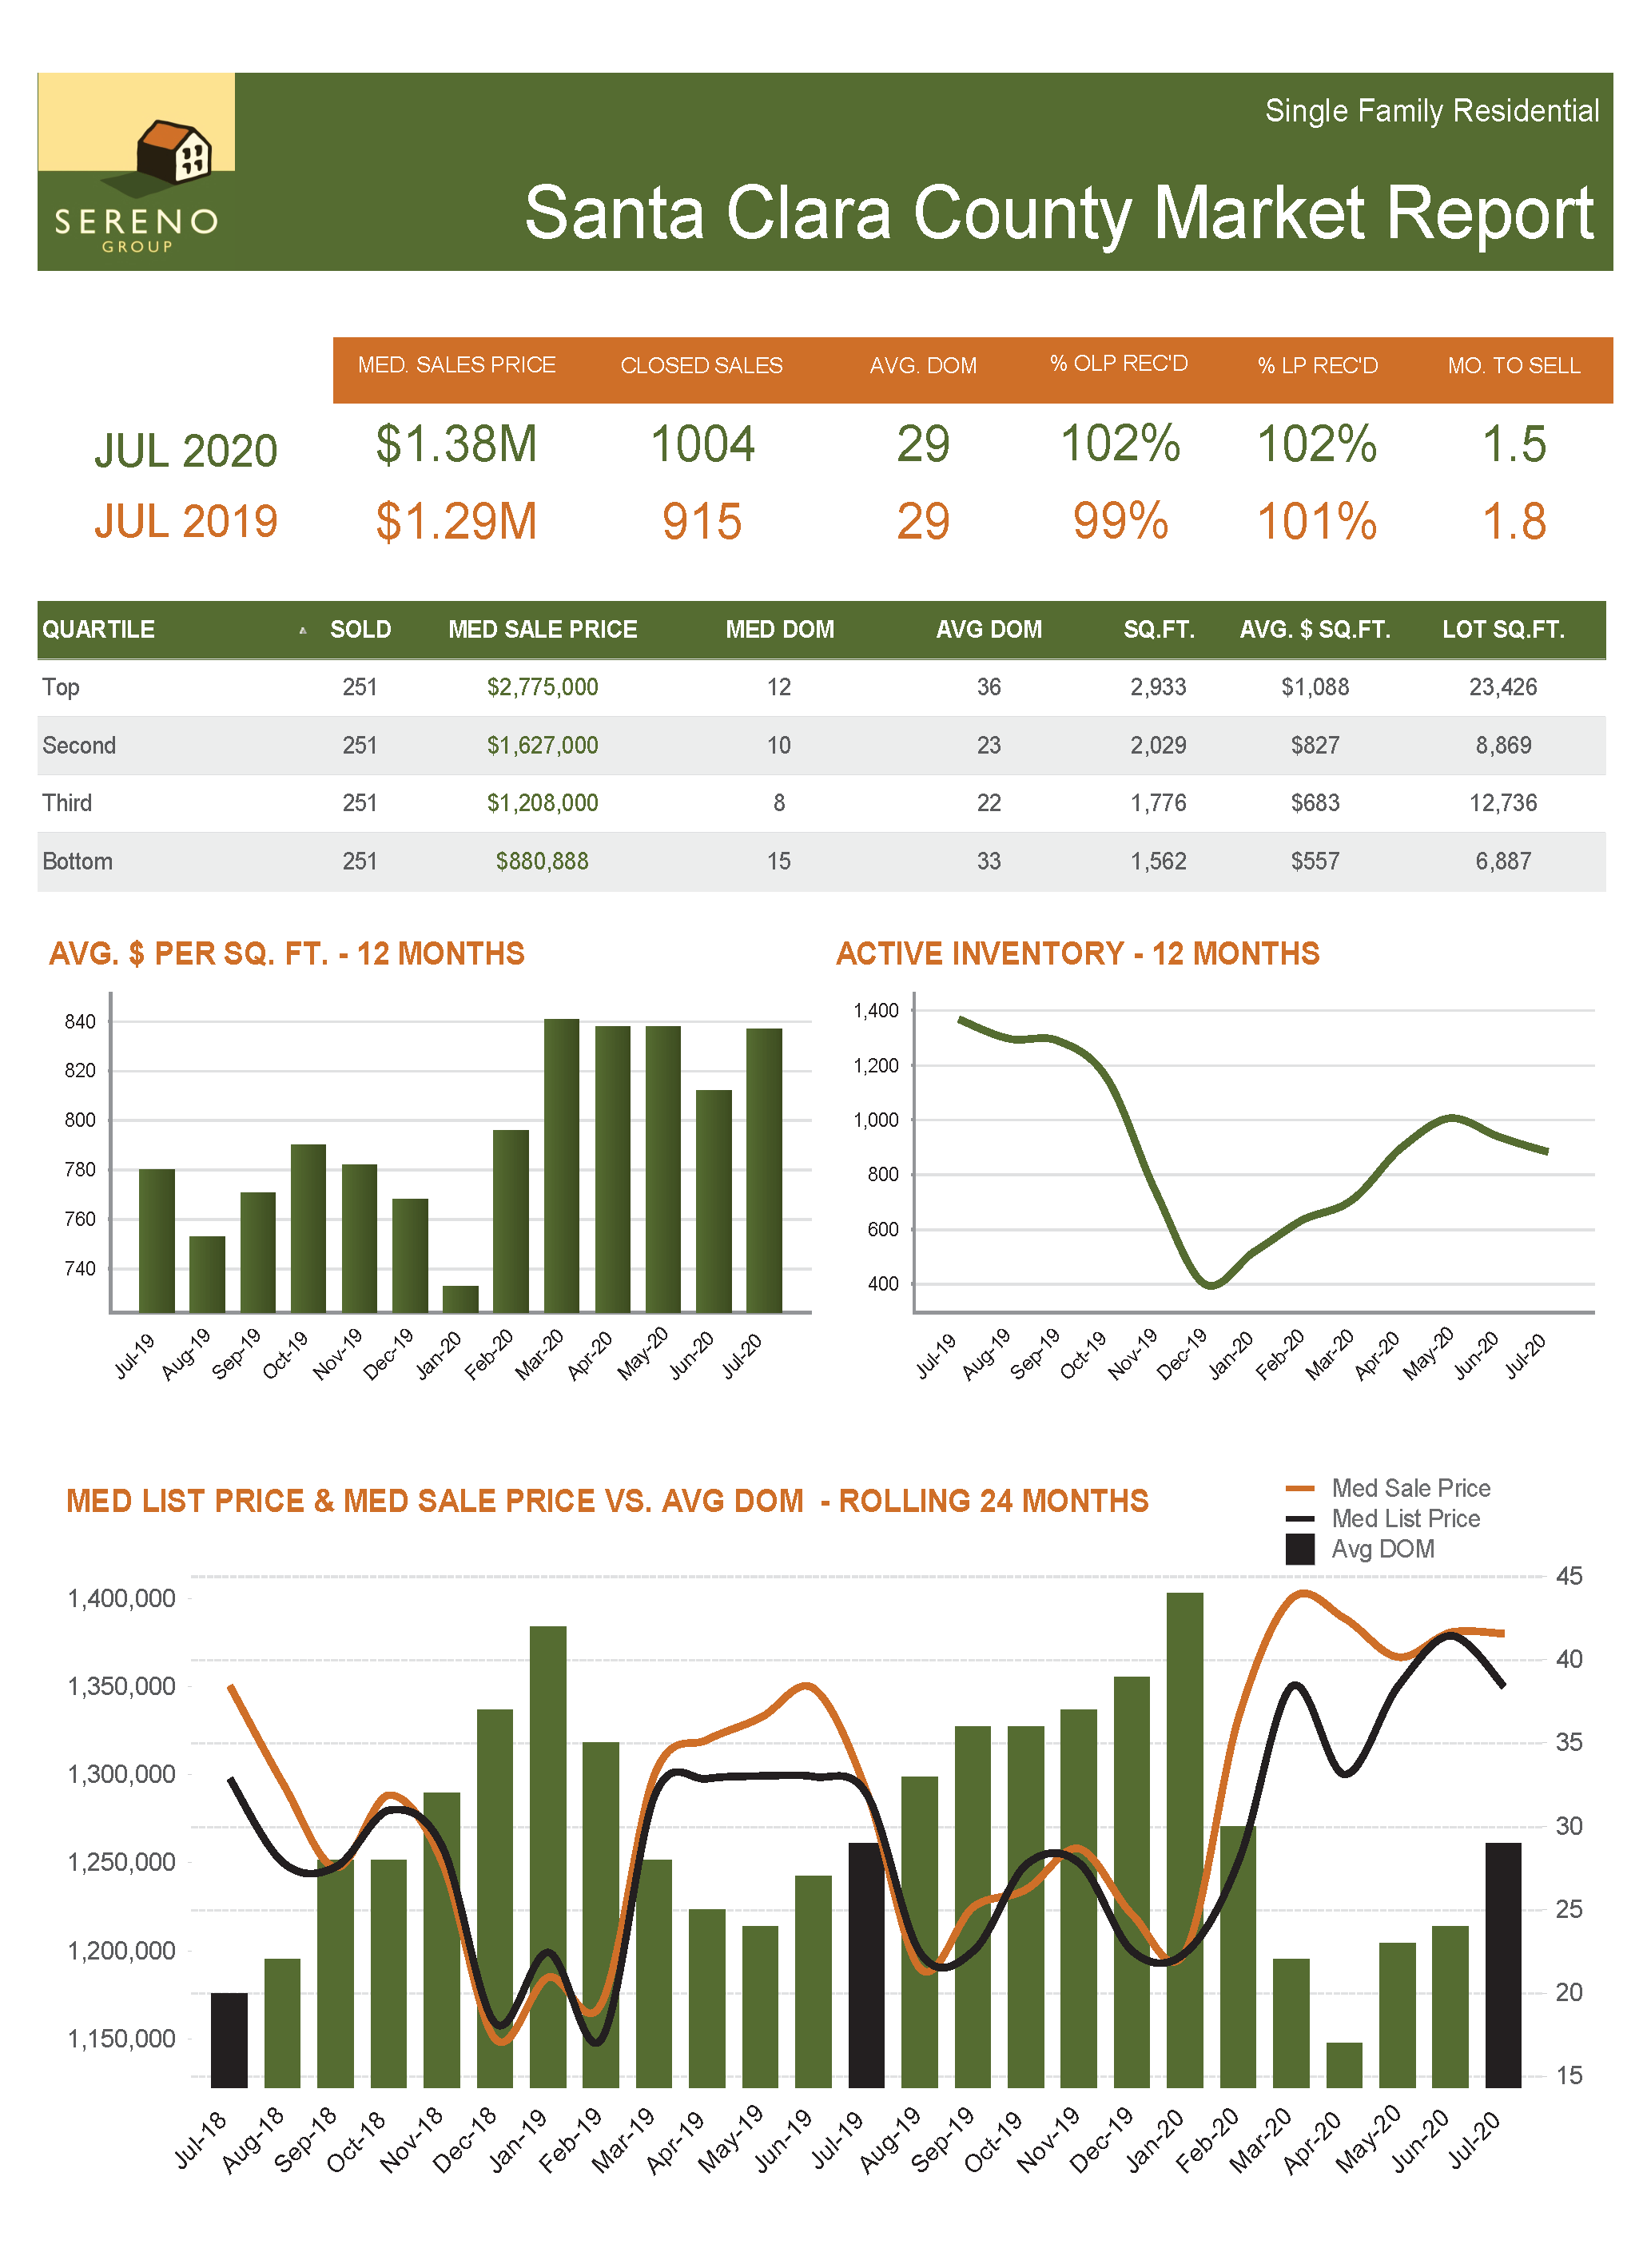 Santa Clara County SFH Market Report - Jul 2020